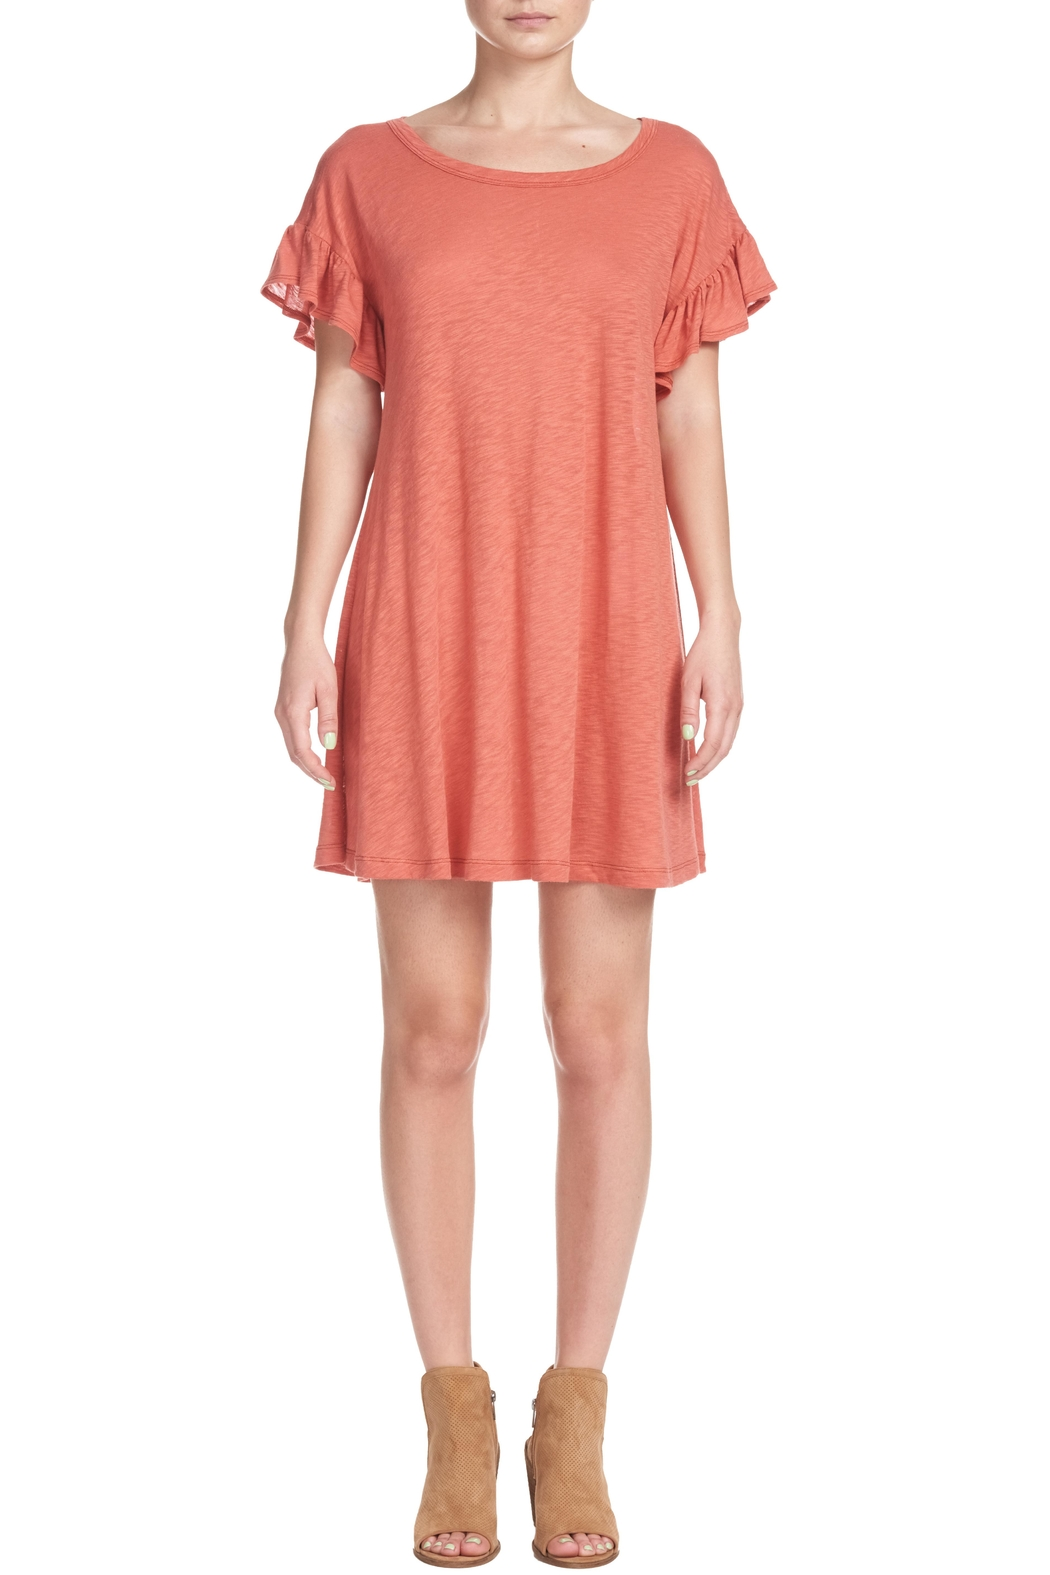 Elan Ruffle T-Shirt Dress - Main Image